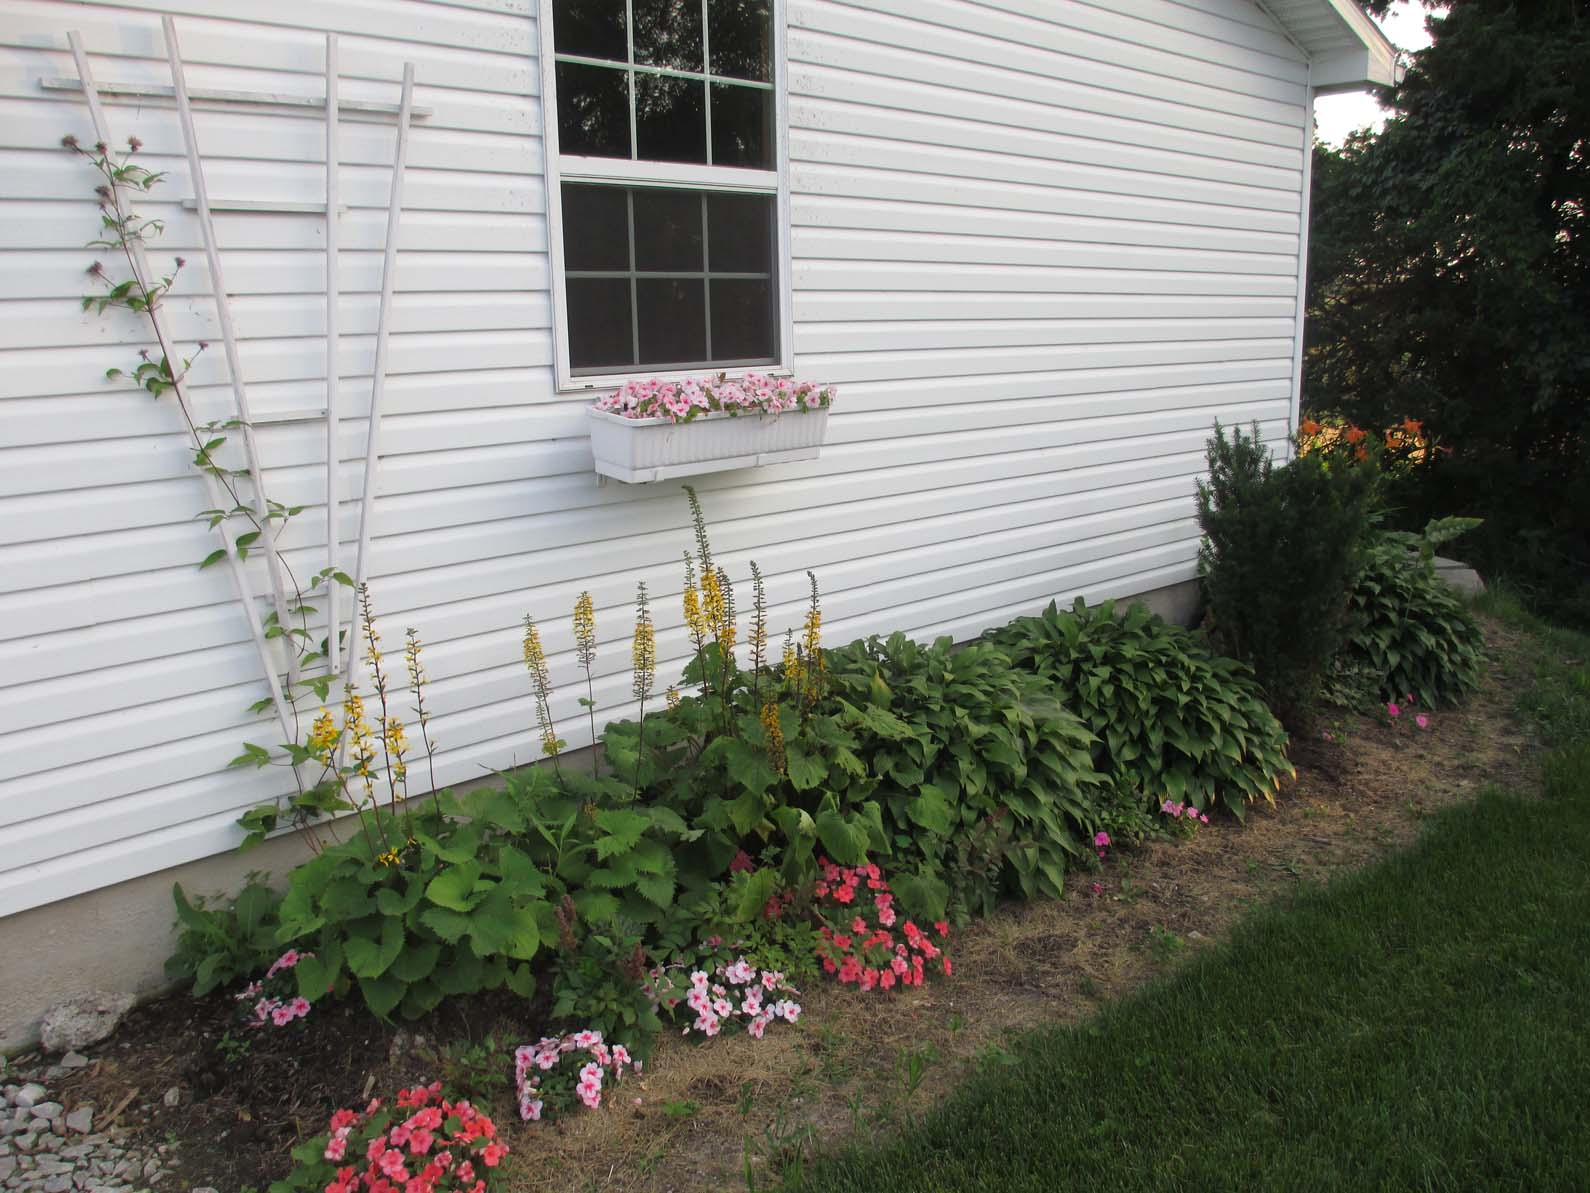 Landscaping On North Side Of House : The front north side of our garage planted with clematis ligularia